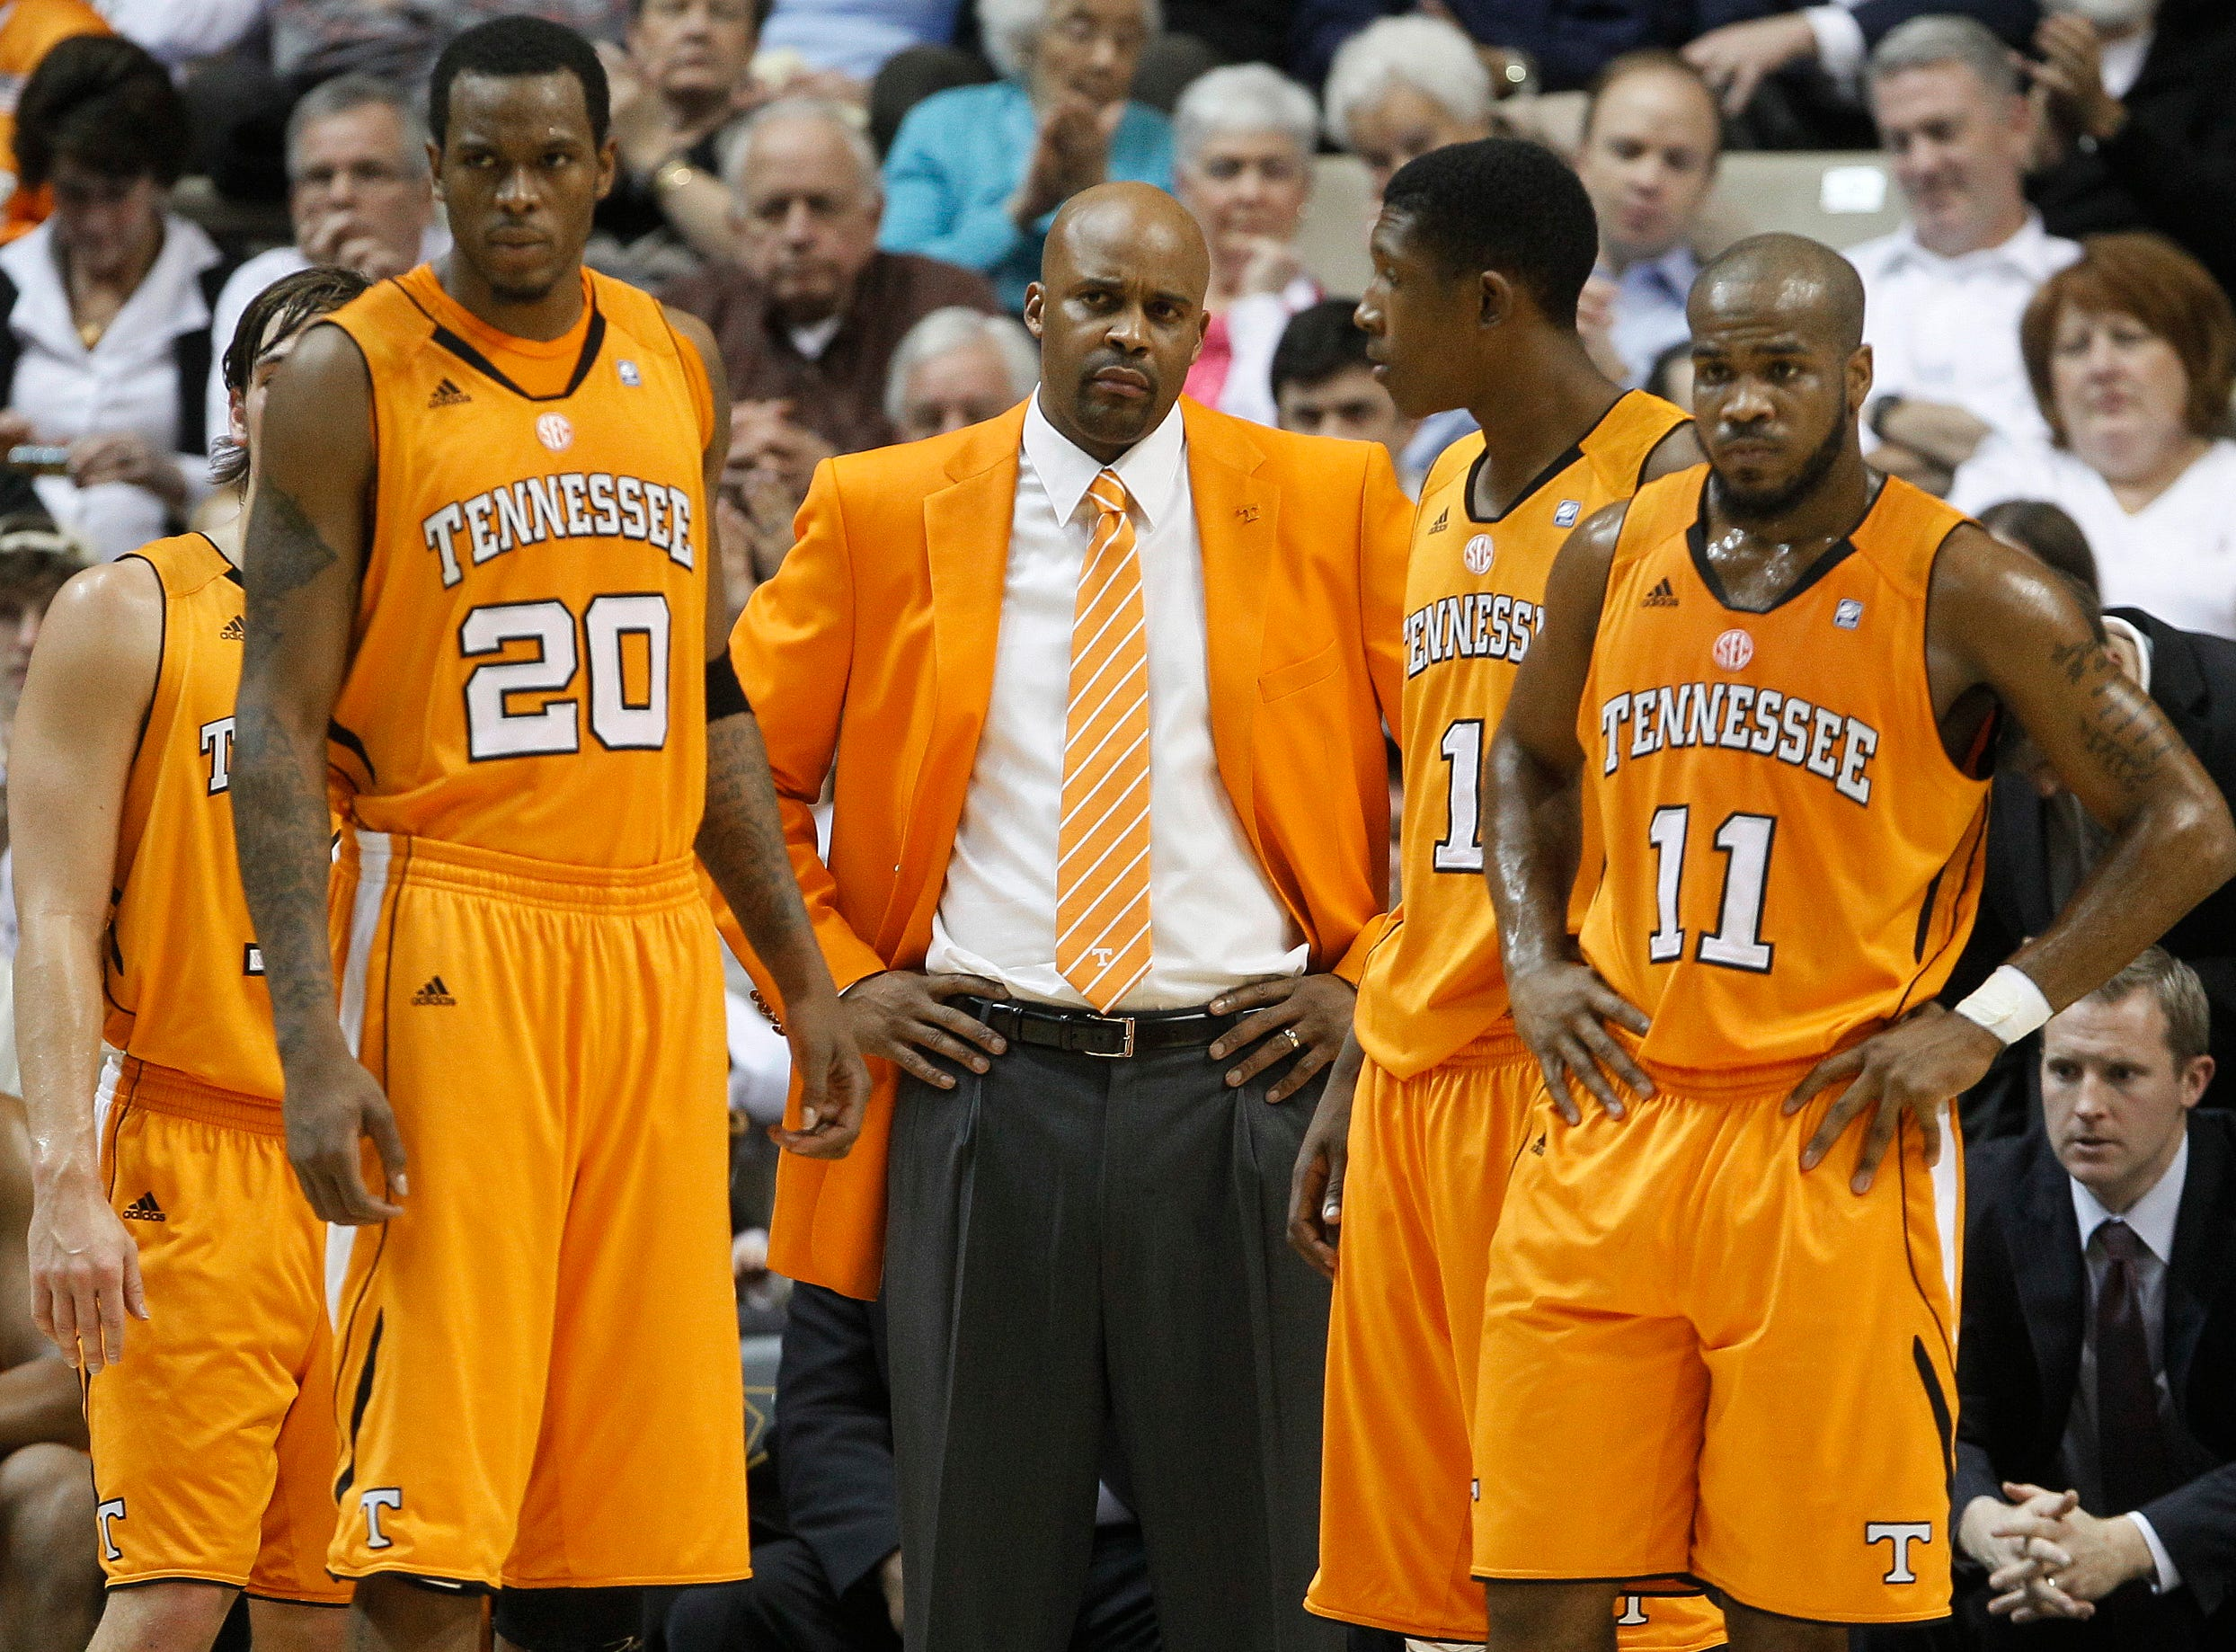 Tennessee head coach Cuonzo Martin, center, watches from the bench along with Kenny Hall (20), Josh Richardson (1) and Trae Golden (11) in the first half of an NCAA college basketball game against Vanderbilt on Tuesday, Jan. 24, 2012, in Nashville, Tenn.